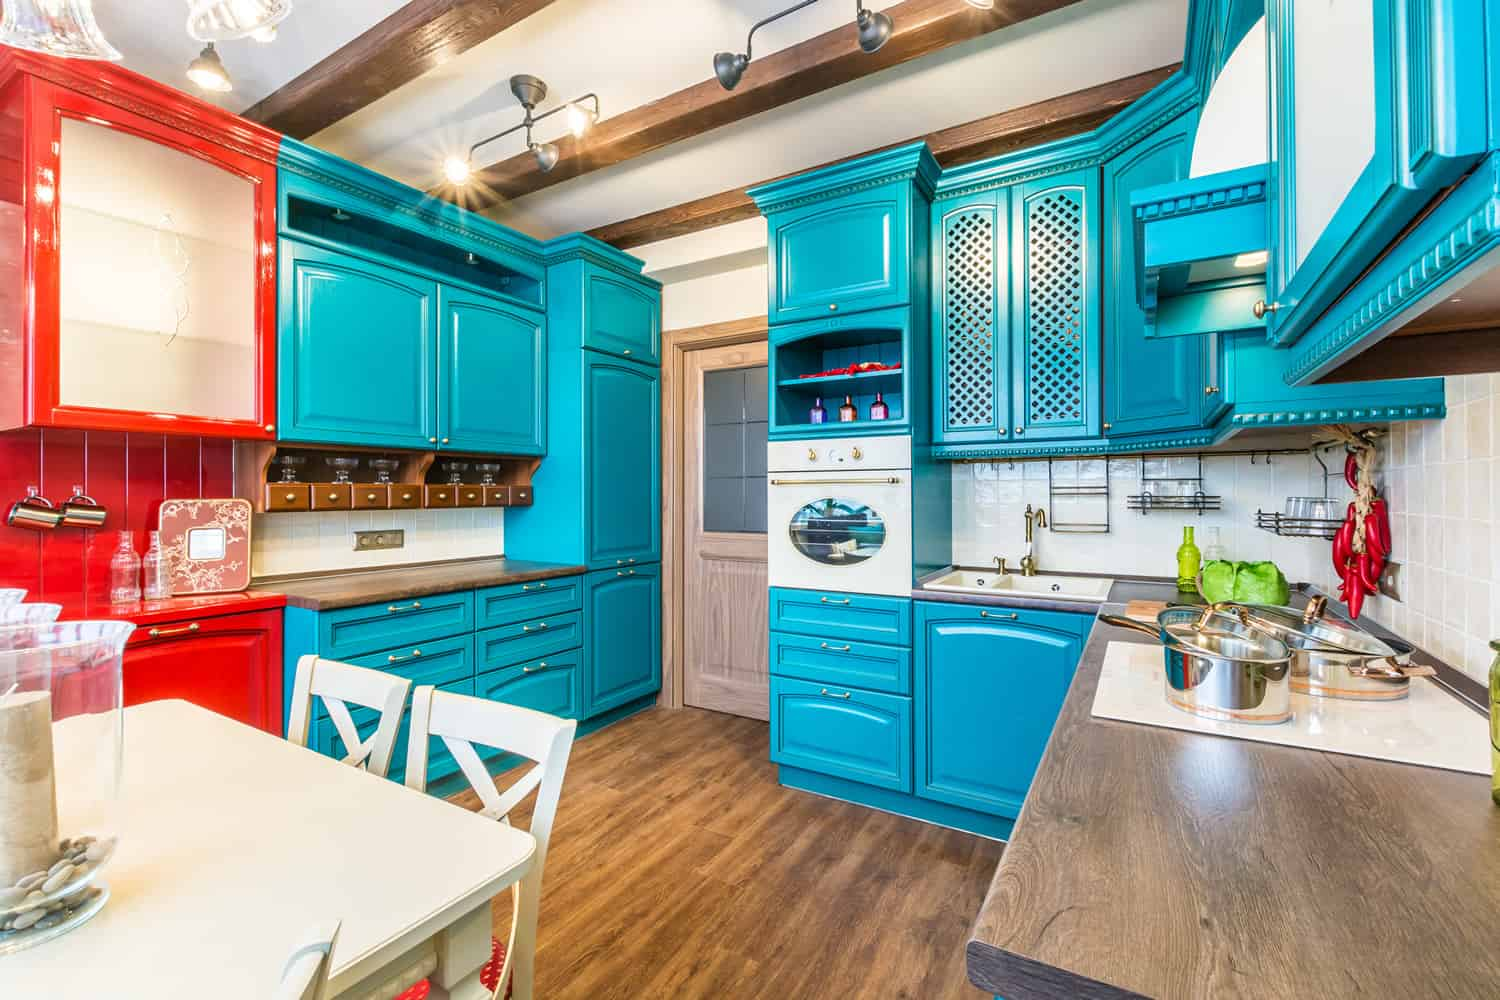 Teal Kitchen Decorating Ideas Kitchen Design Ideas Turquoise Kitchen